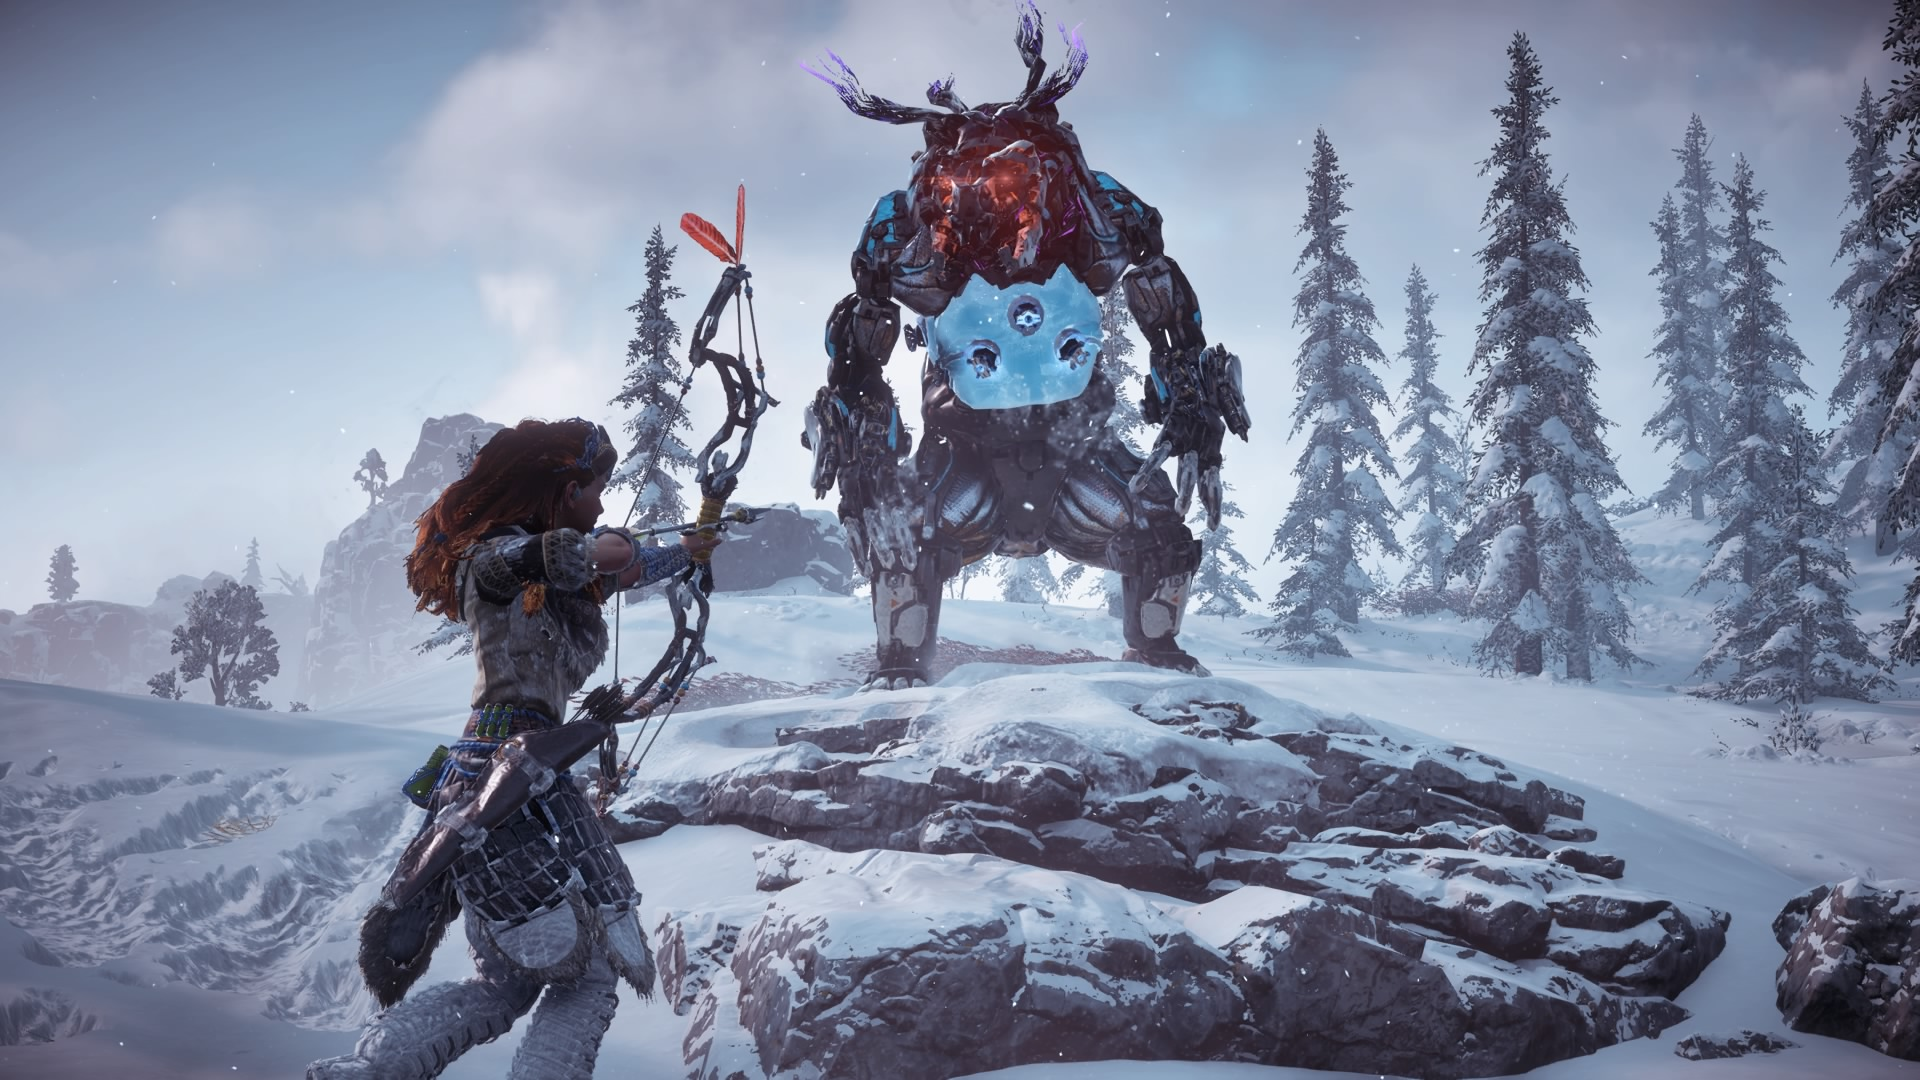 The frozen wilds review